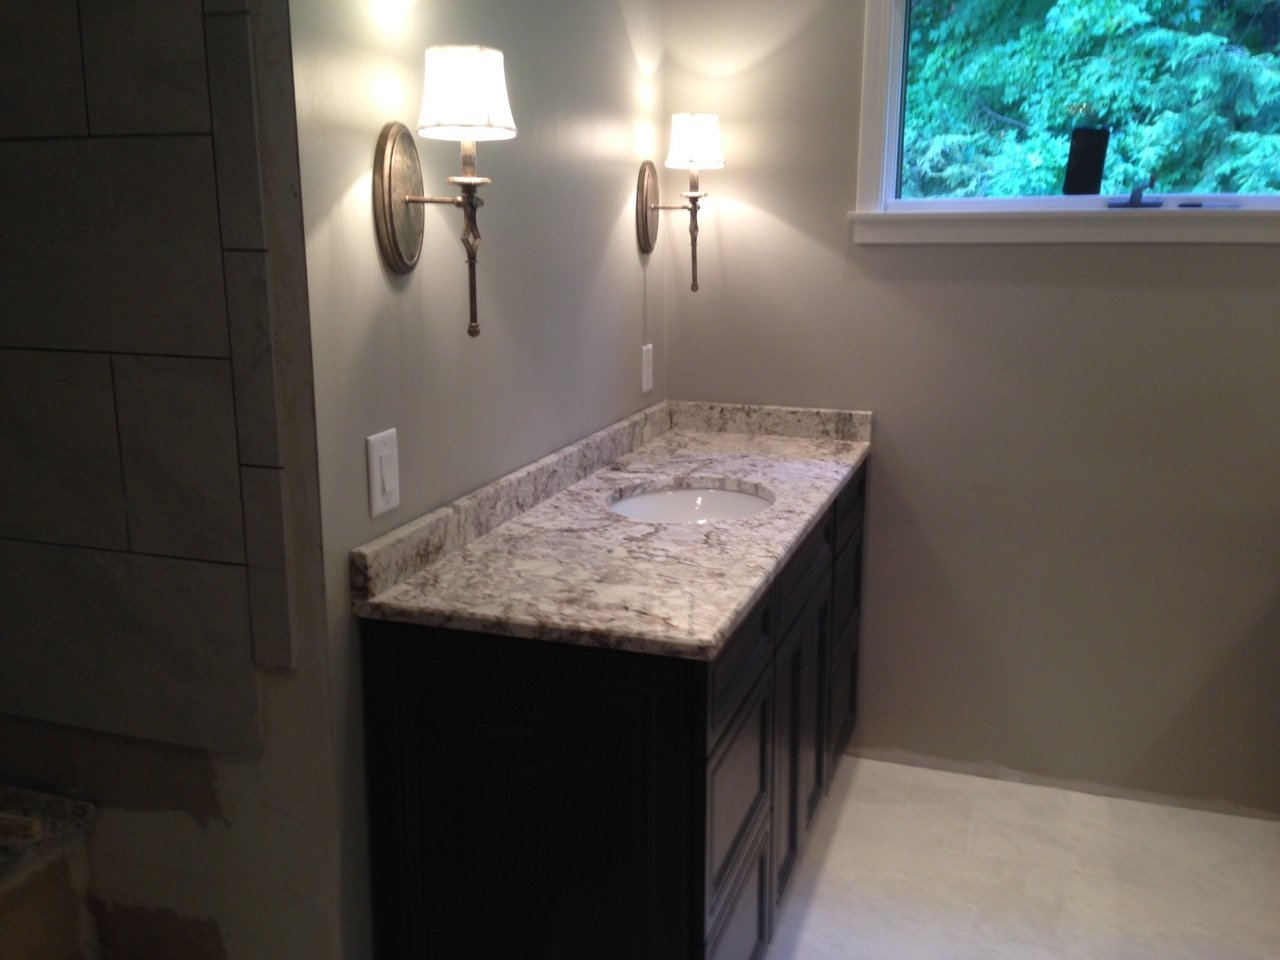 Bathroom Design Buffalo Ny bathroom design buffalo, orchard park, hamburg, amherst, ny